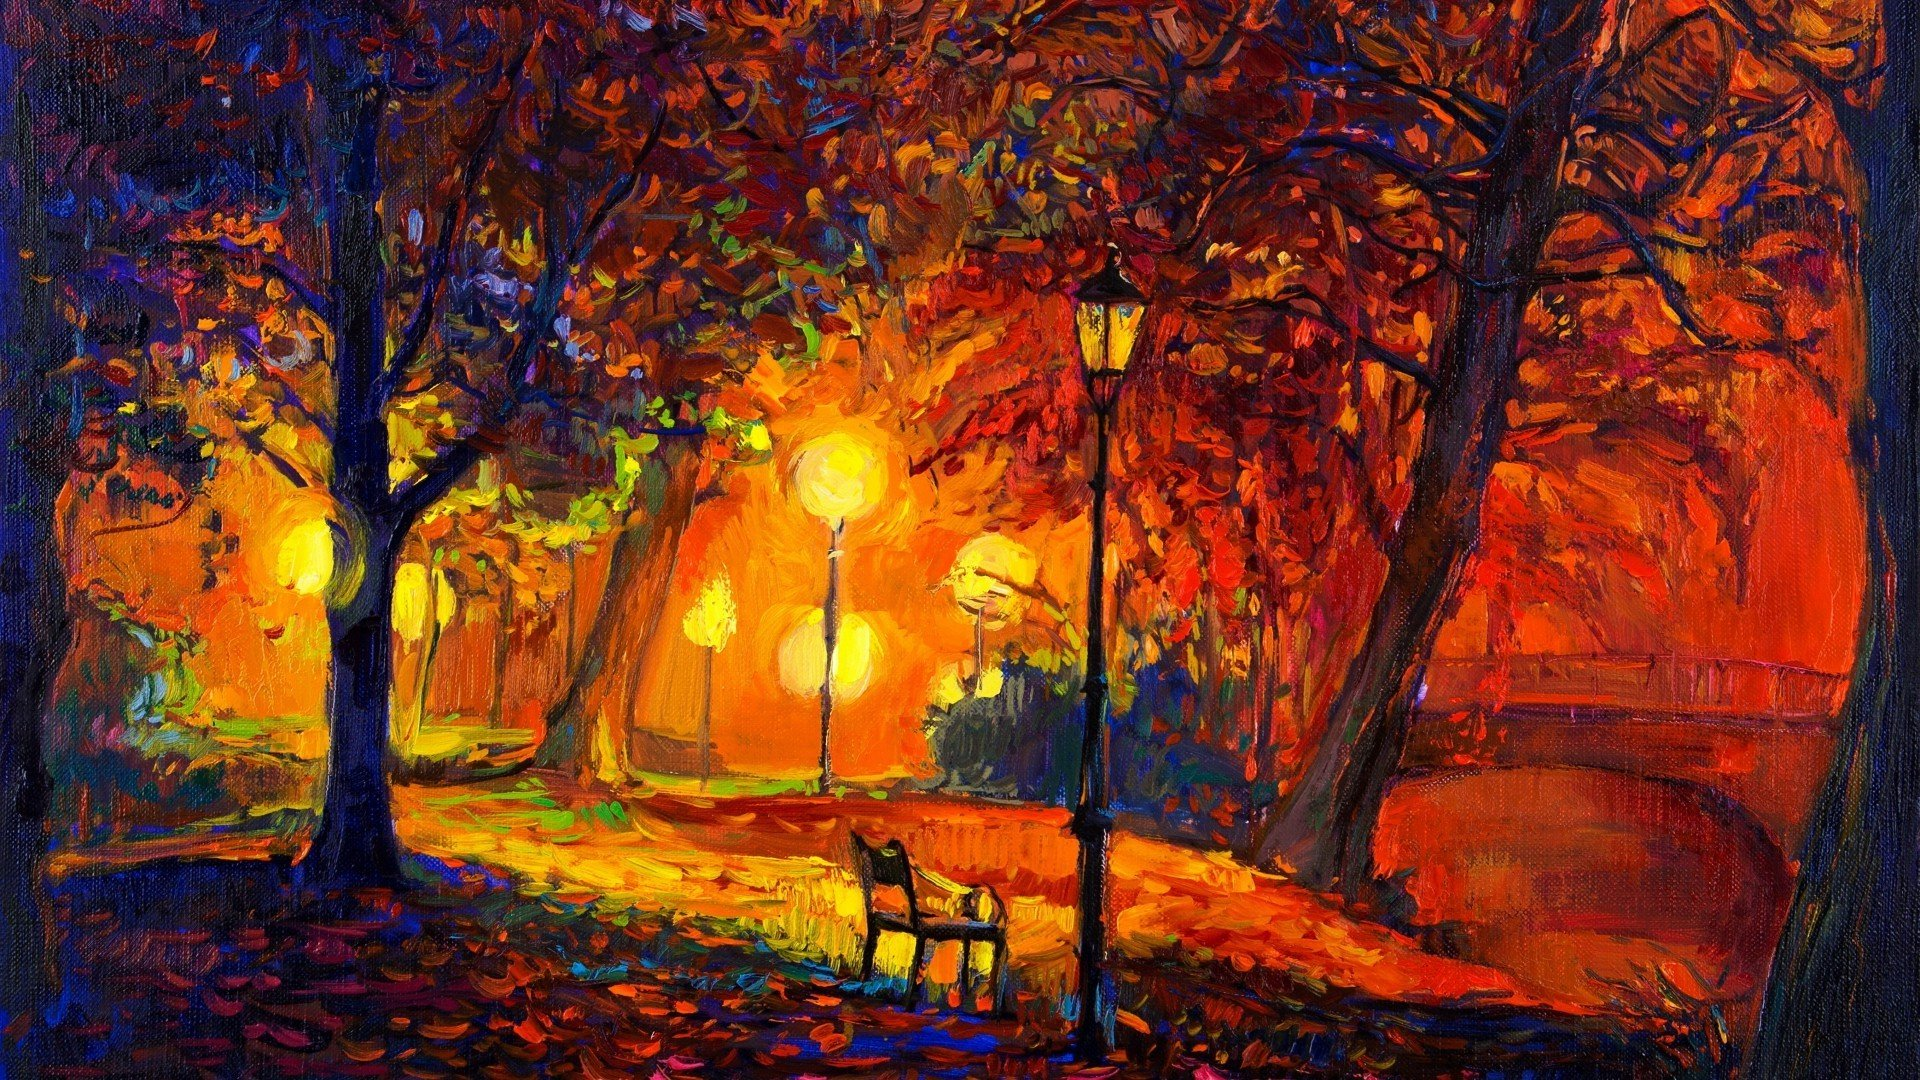 digital Art Nature Trees Painting Park Bench Lamps 1920x1080